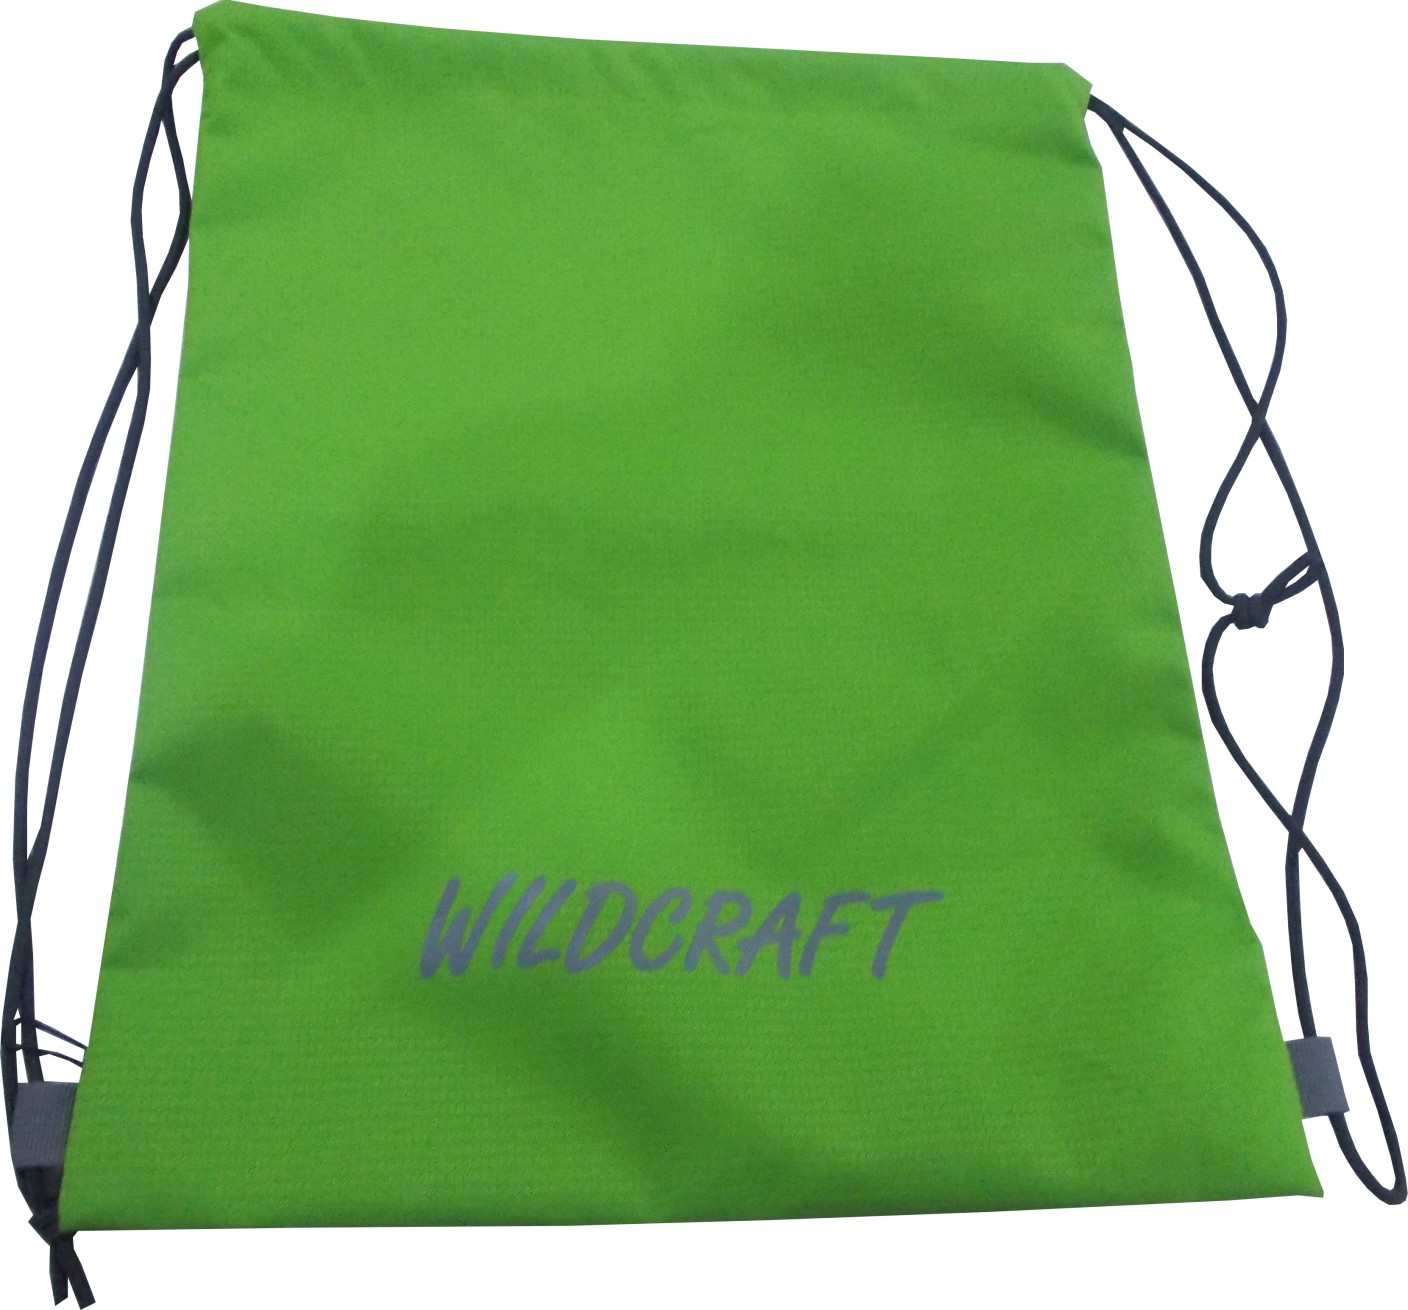 Gym Bag Flipkart: Buy Wildcraft String Backpack